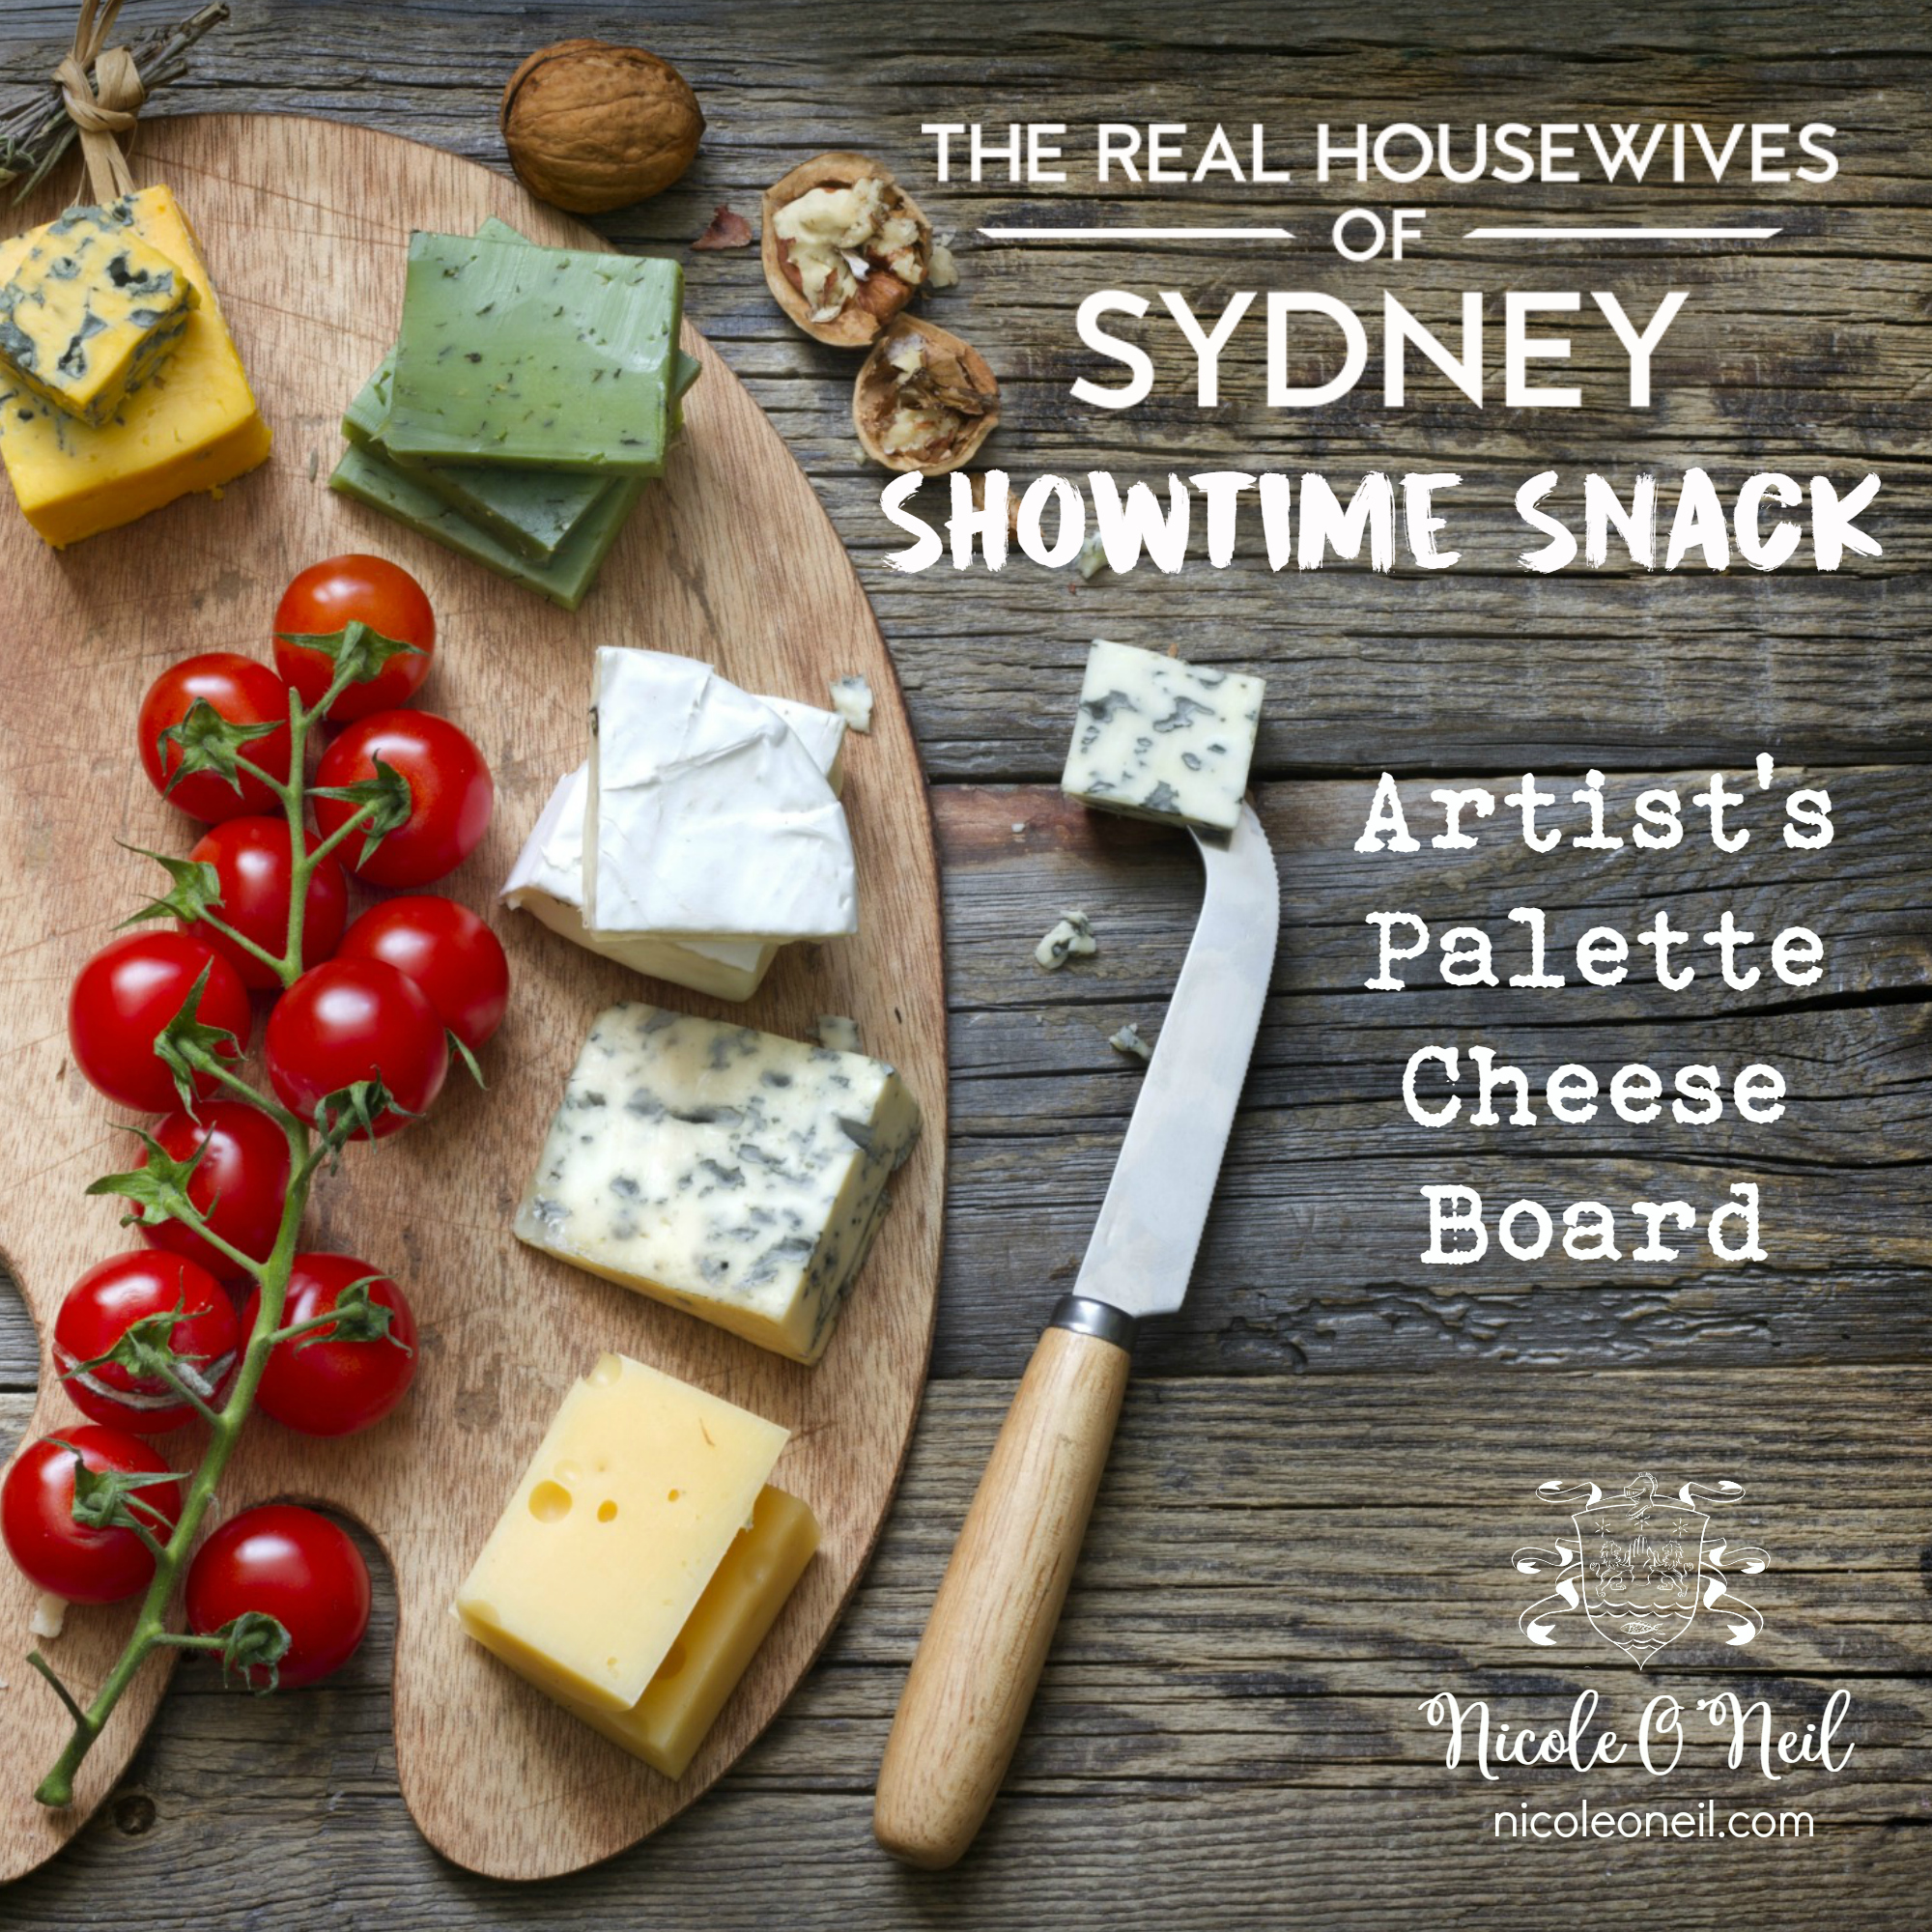 The Real Housewives of Sydney Showtime Snack - How to Make an Artist's Palette Cheese Plate Platter